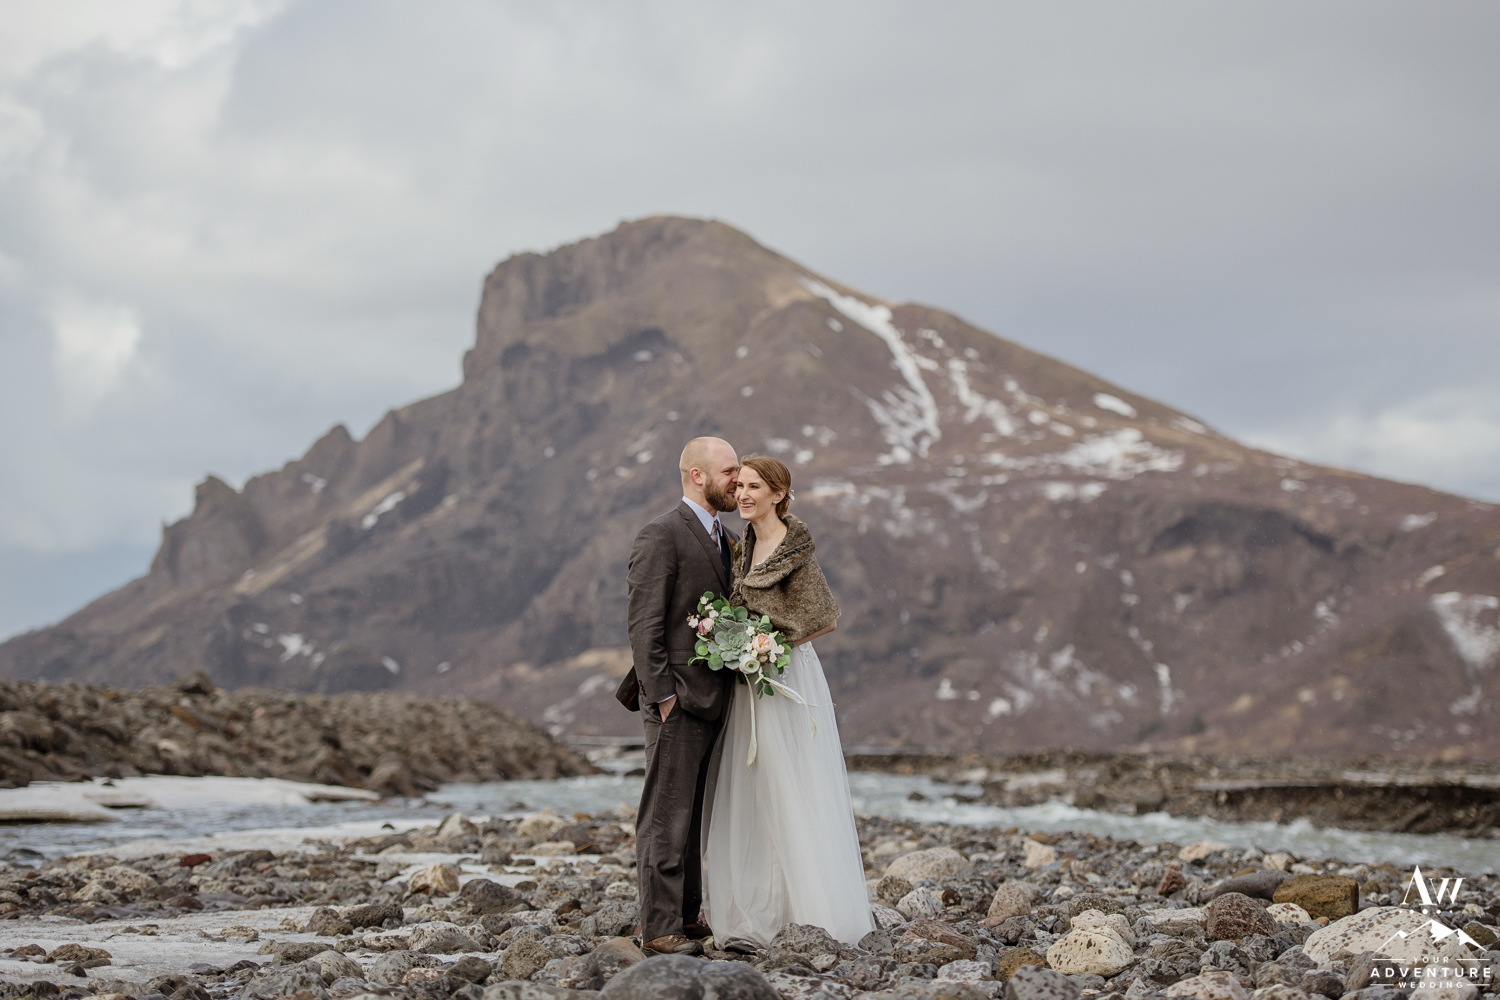 Couple Kissing during Iceland Adventure Elopement Photo